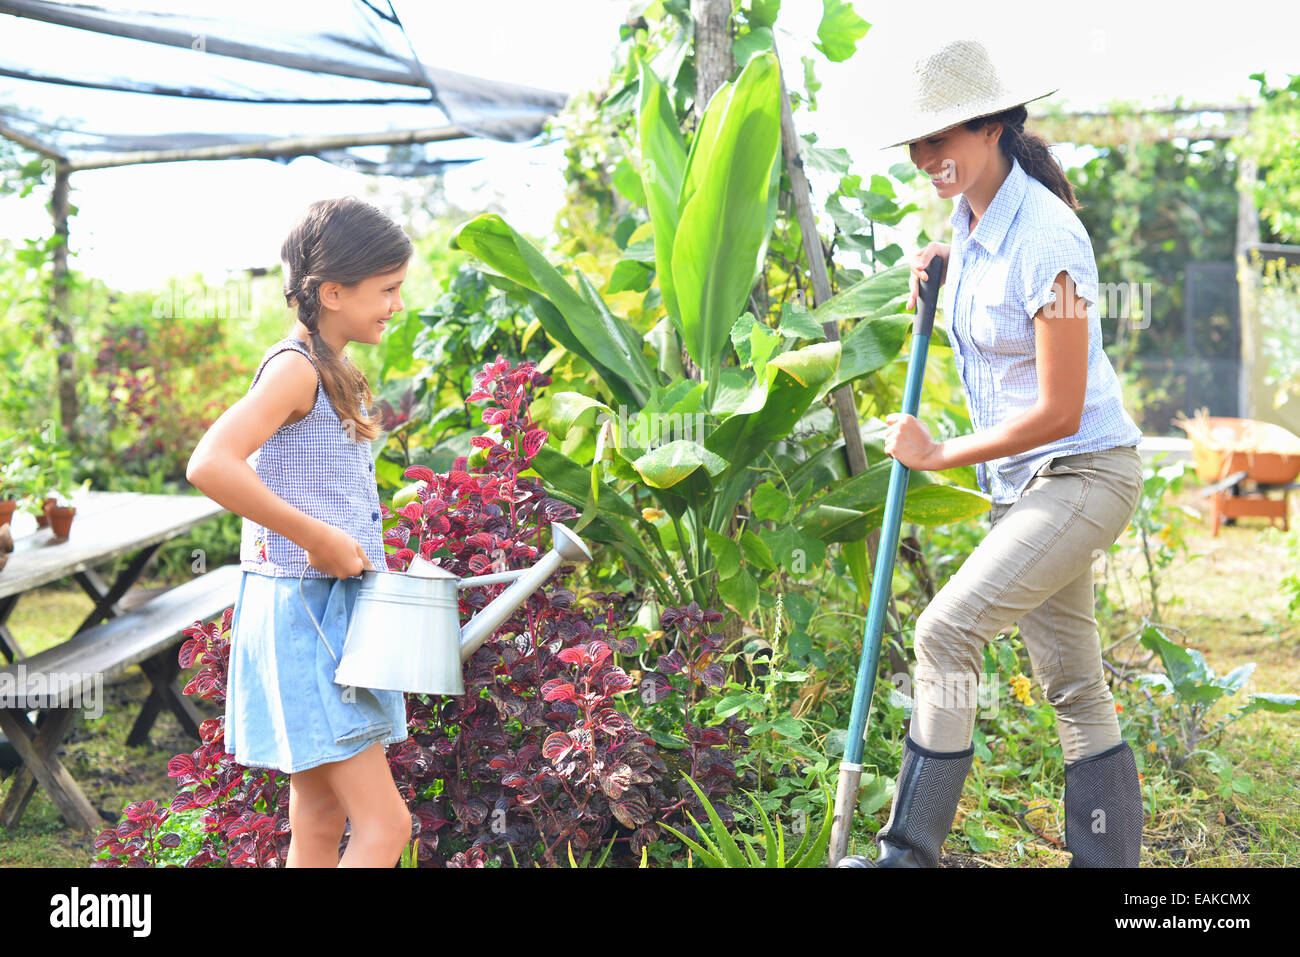 Smiling woman with shovel and girl with watering can working in garden - Stock Image